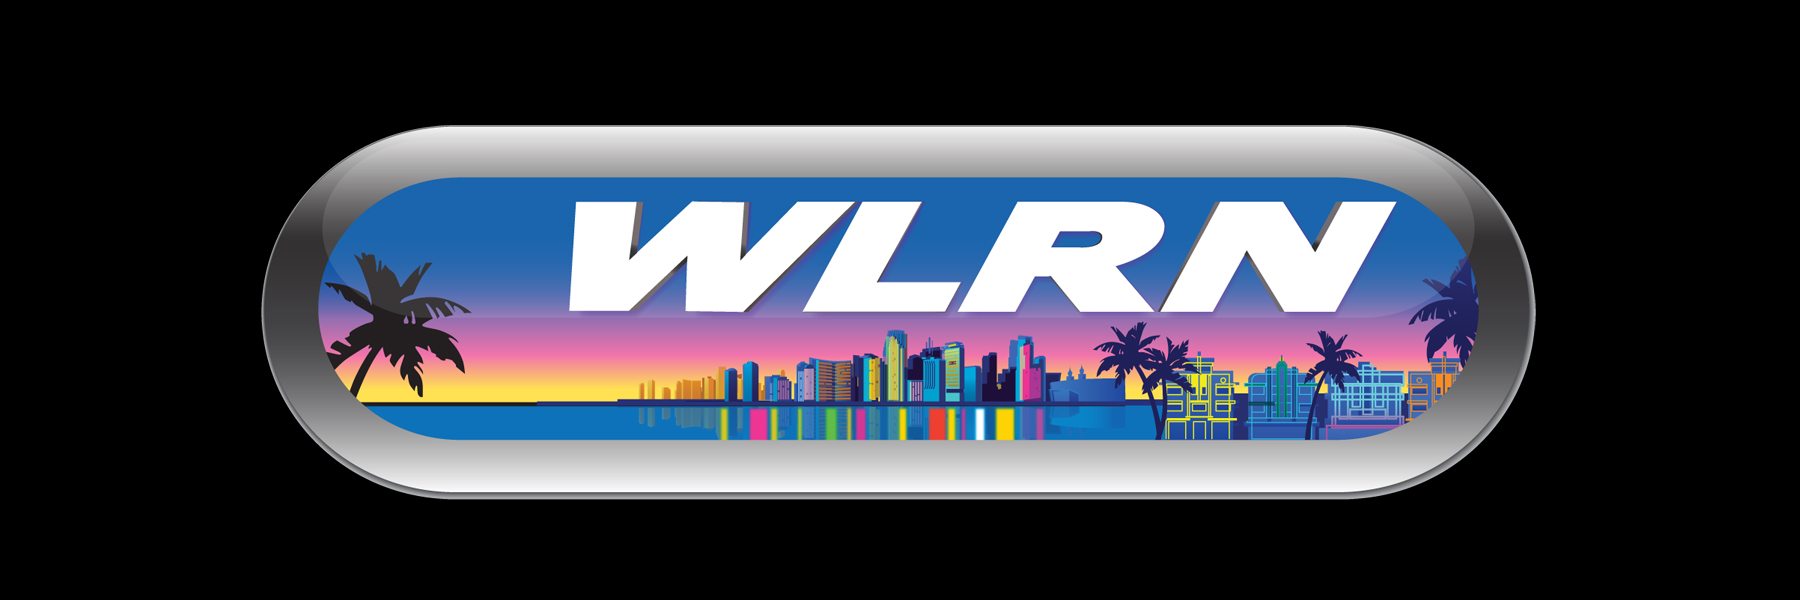 WLRN Button.jpg